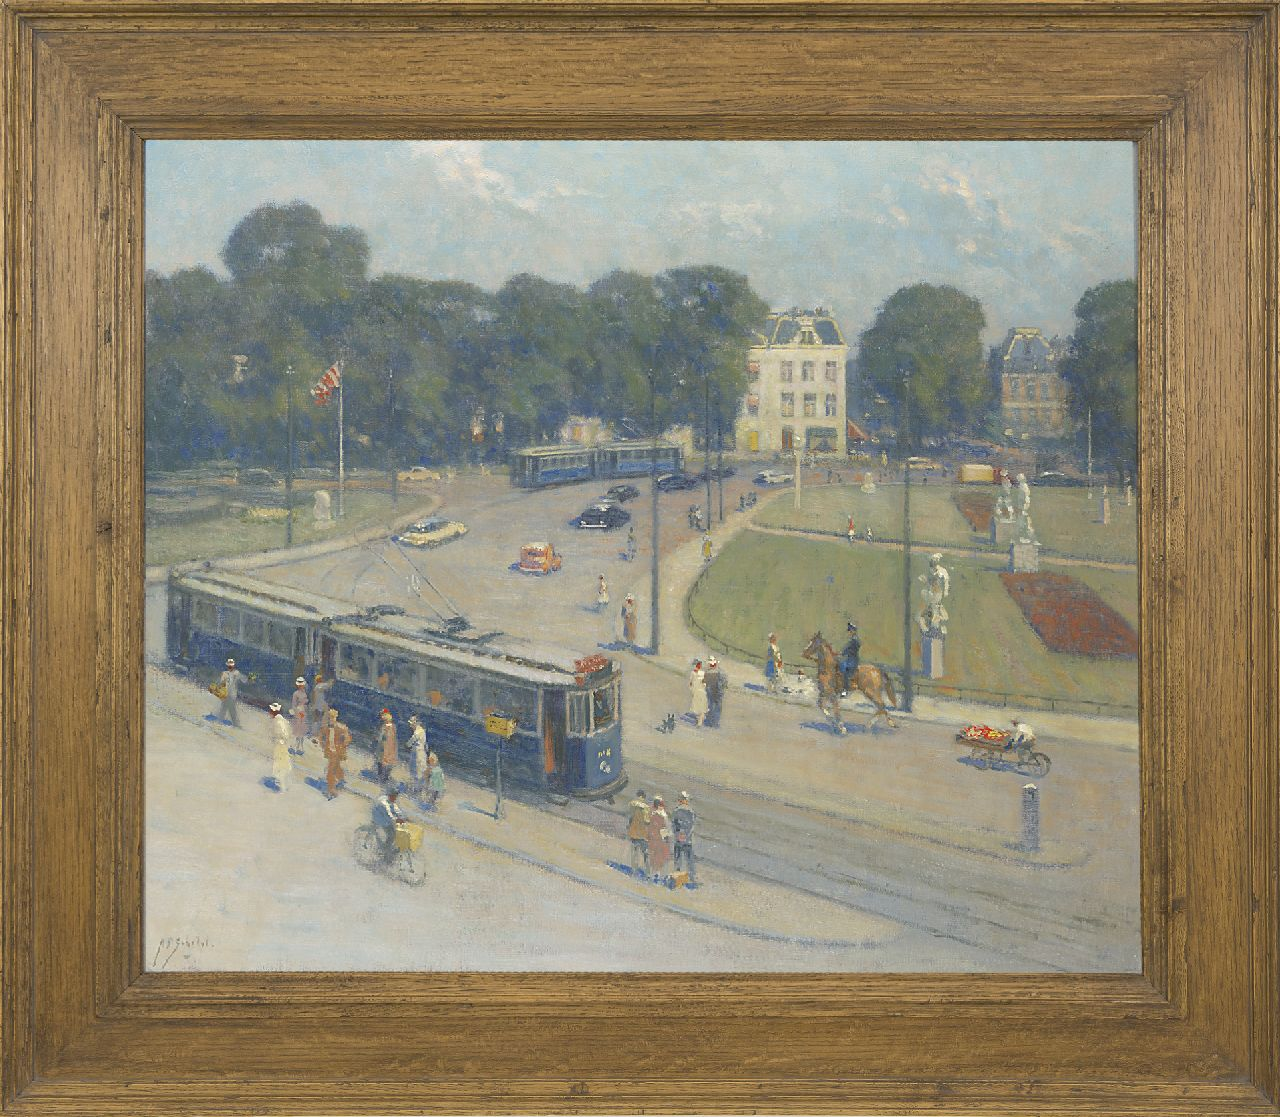 Schotel A.P.  | Anthonie Pieter Schotel | Paintings offered for sale | Sculpture exhibition on the Frederiksplein in Amsterdam, 1951, oil on canvas 59.8 x 70.2 cm, signed l.l. and painted in 1951